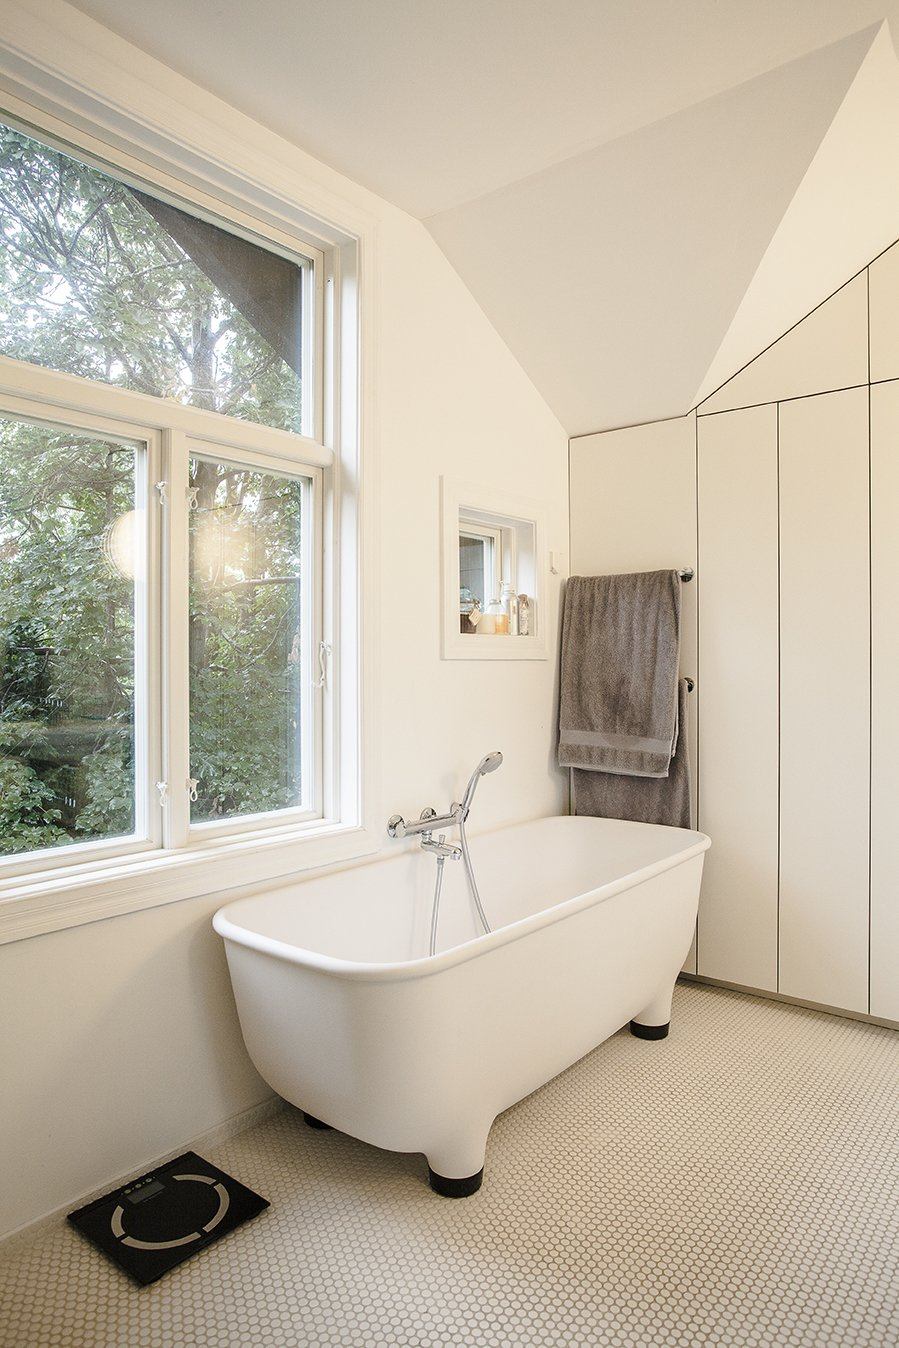 The footed bathtub in the completely renovated bathroom is by Marc Newson for Caroma. Skibsted Residence by Dwell